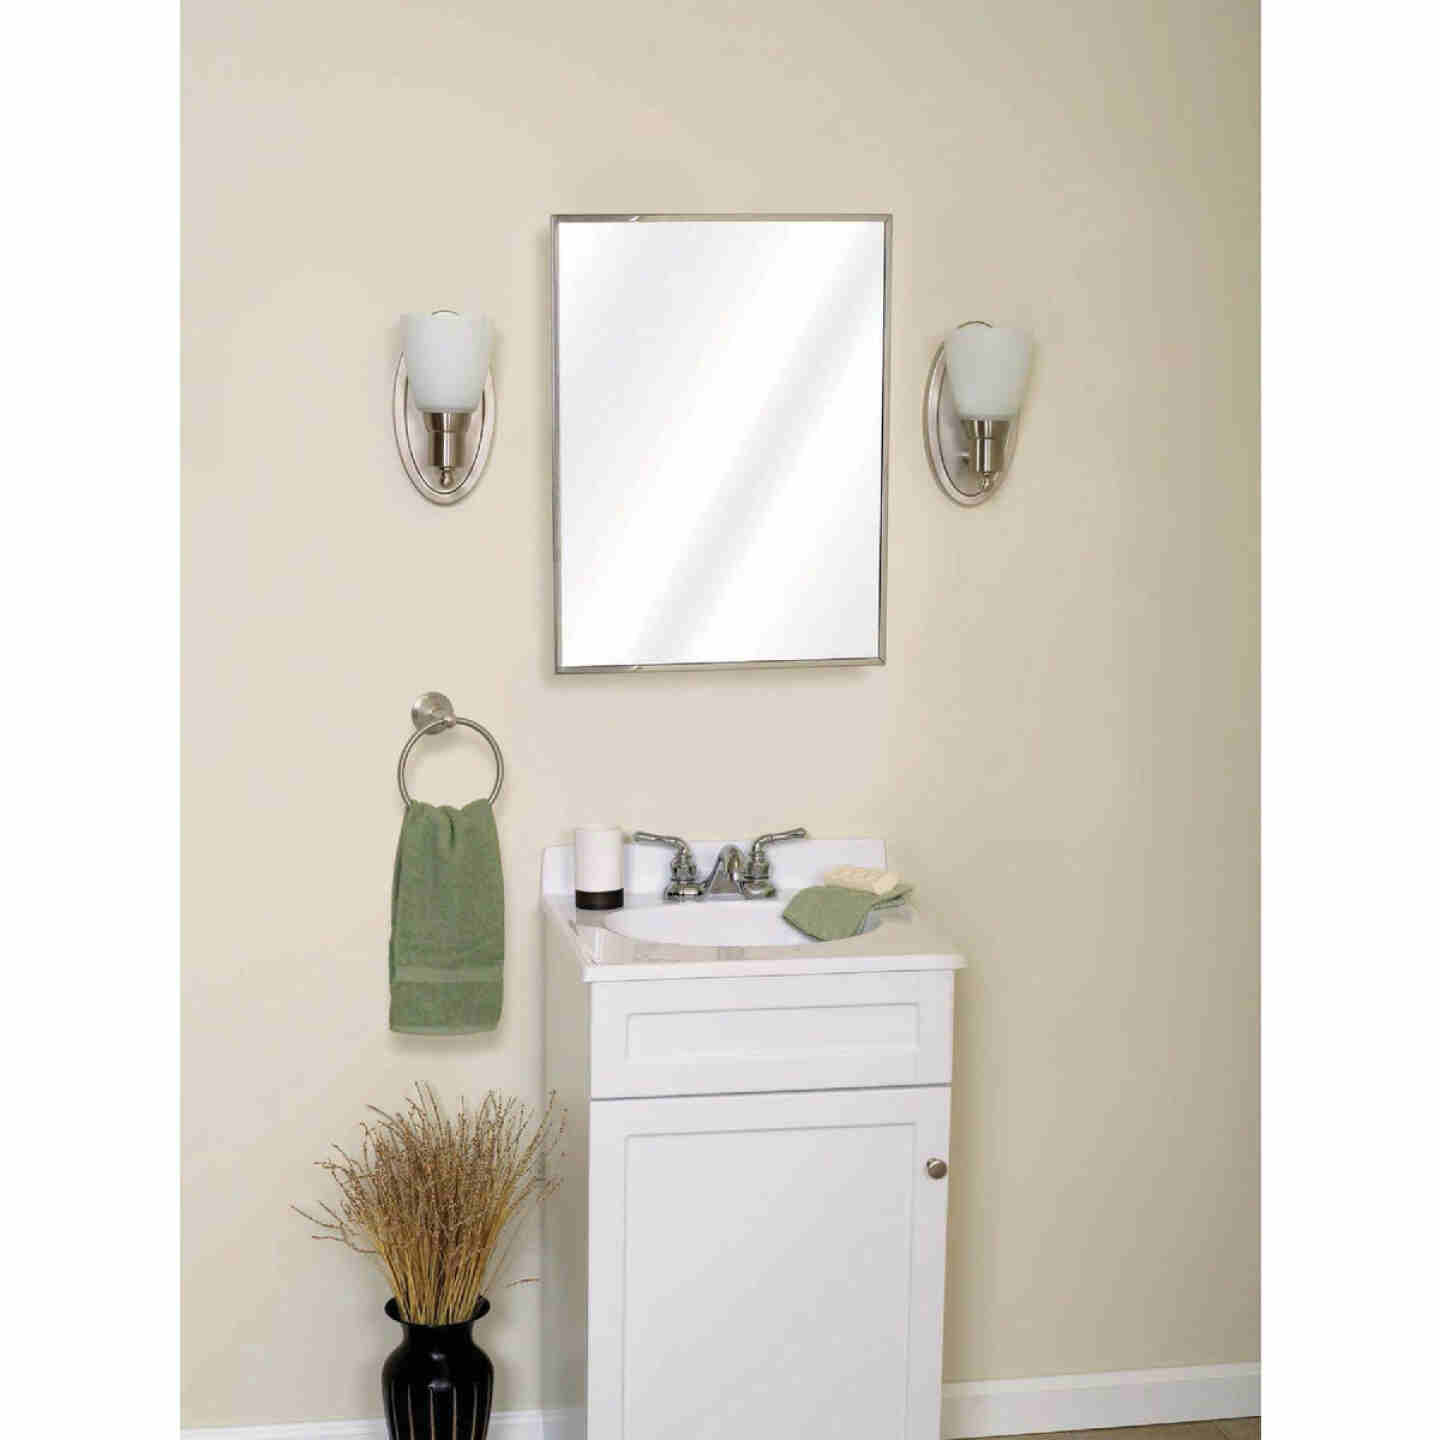 Zenith Stainless Steel 16-1/8 In. W x 20-1/8 In. H x 3-1/4 In. D Single Mirror Surface/Recess Mount Medicine Cabinet Image 2